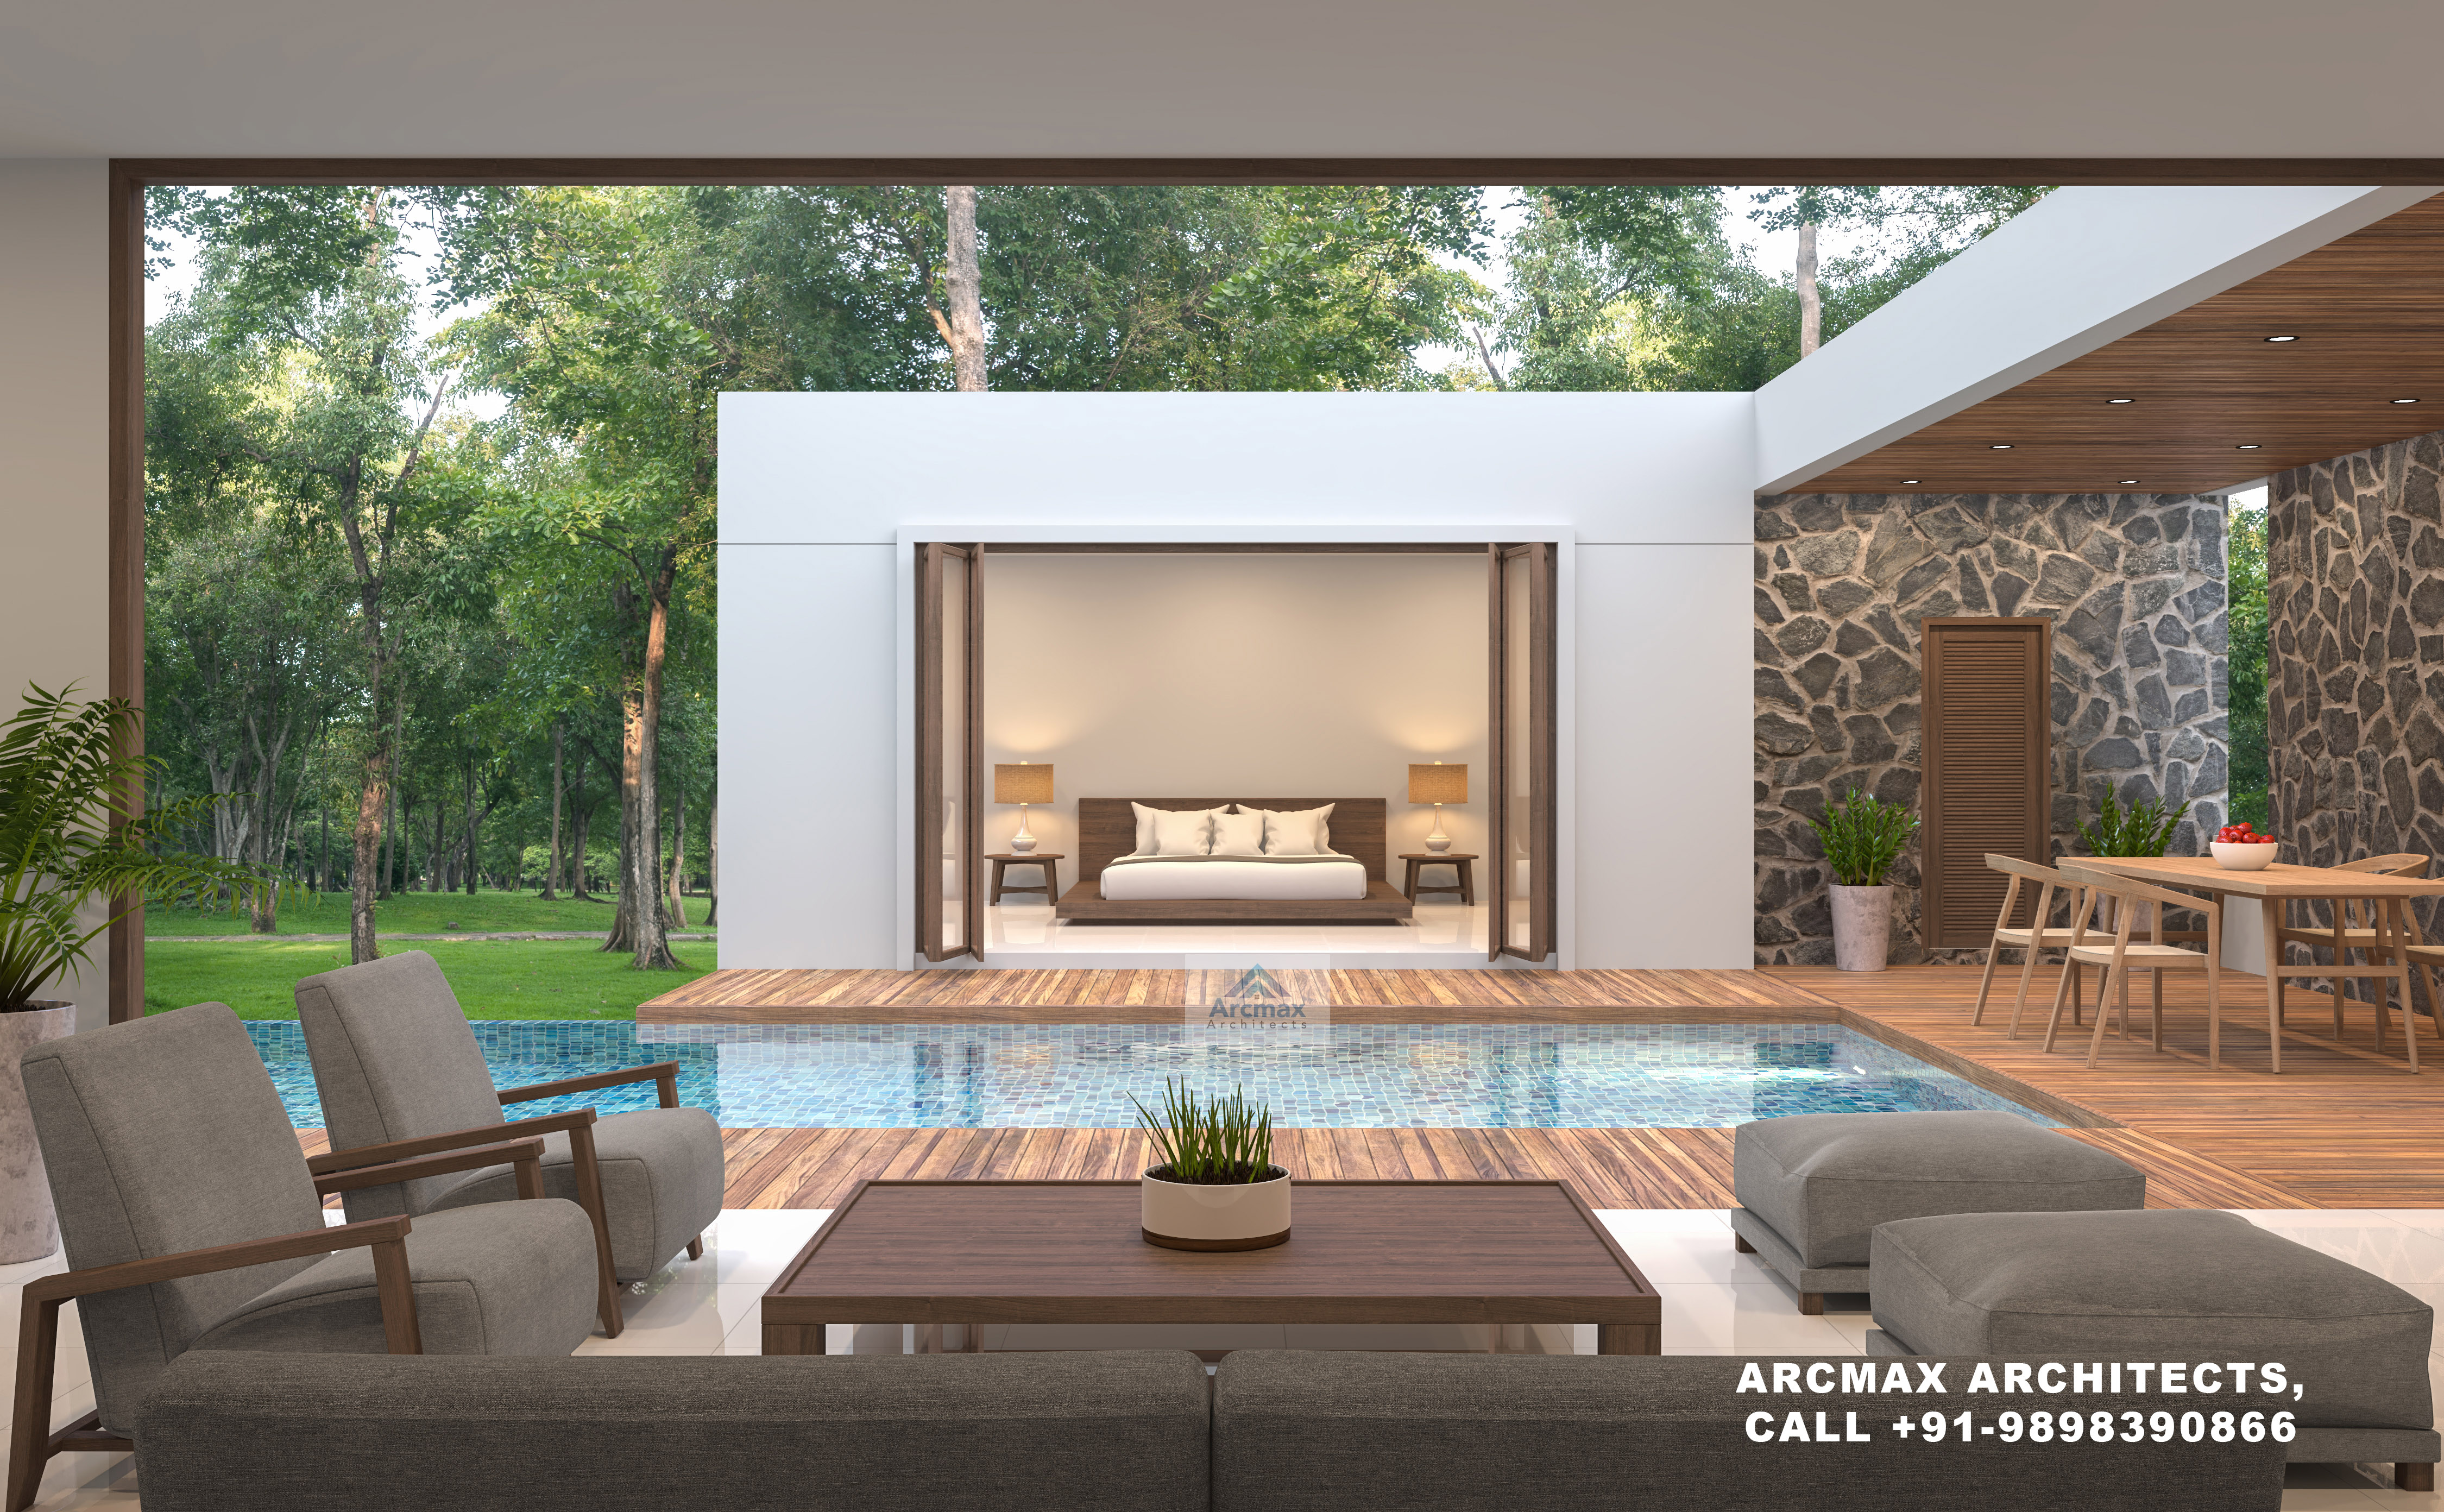 Best Architects For Villa Design In Rajkot Arcmax Architects